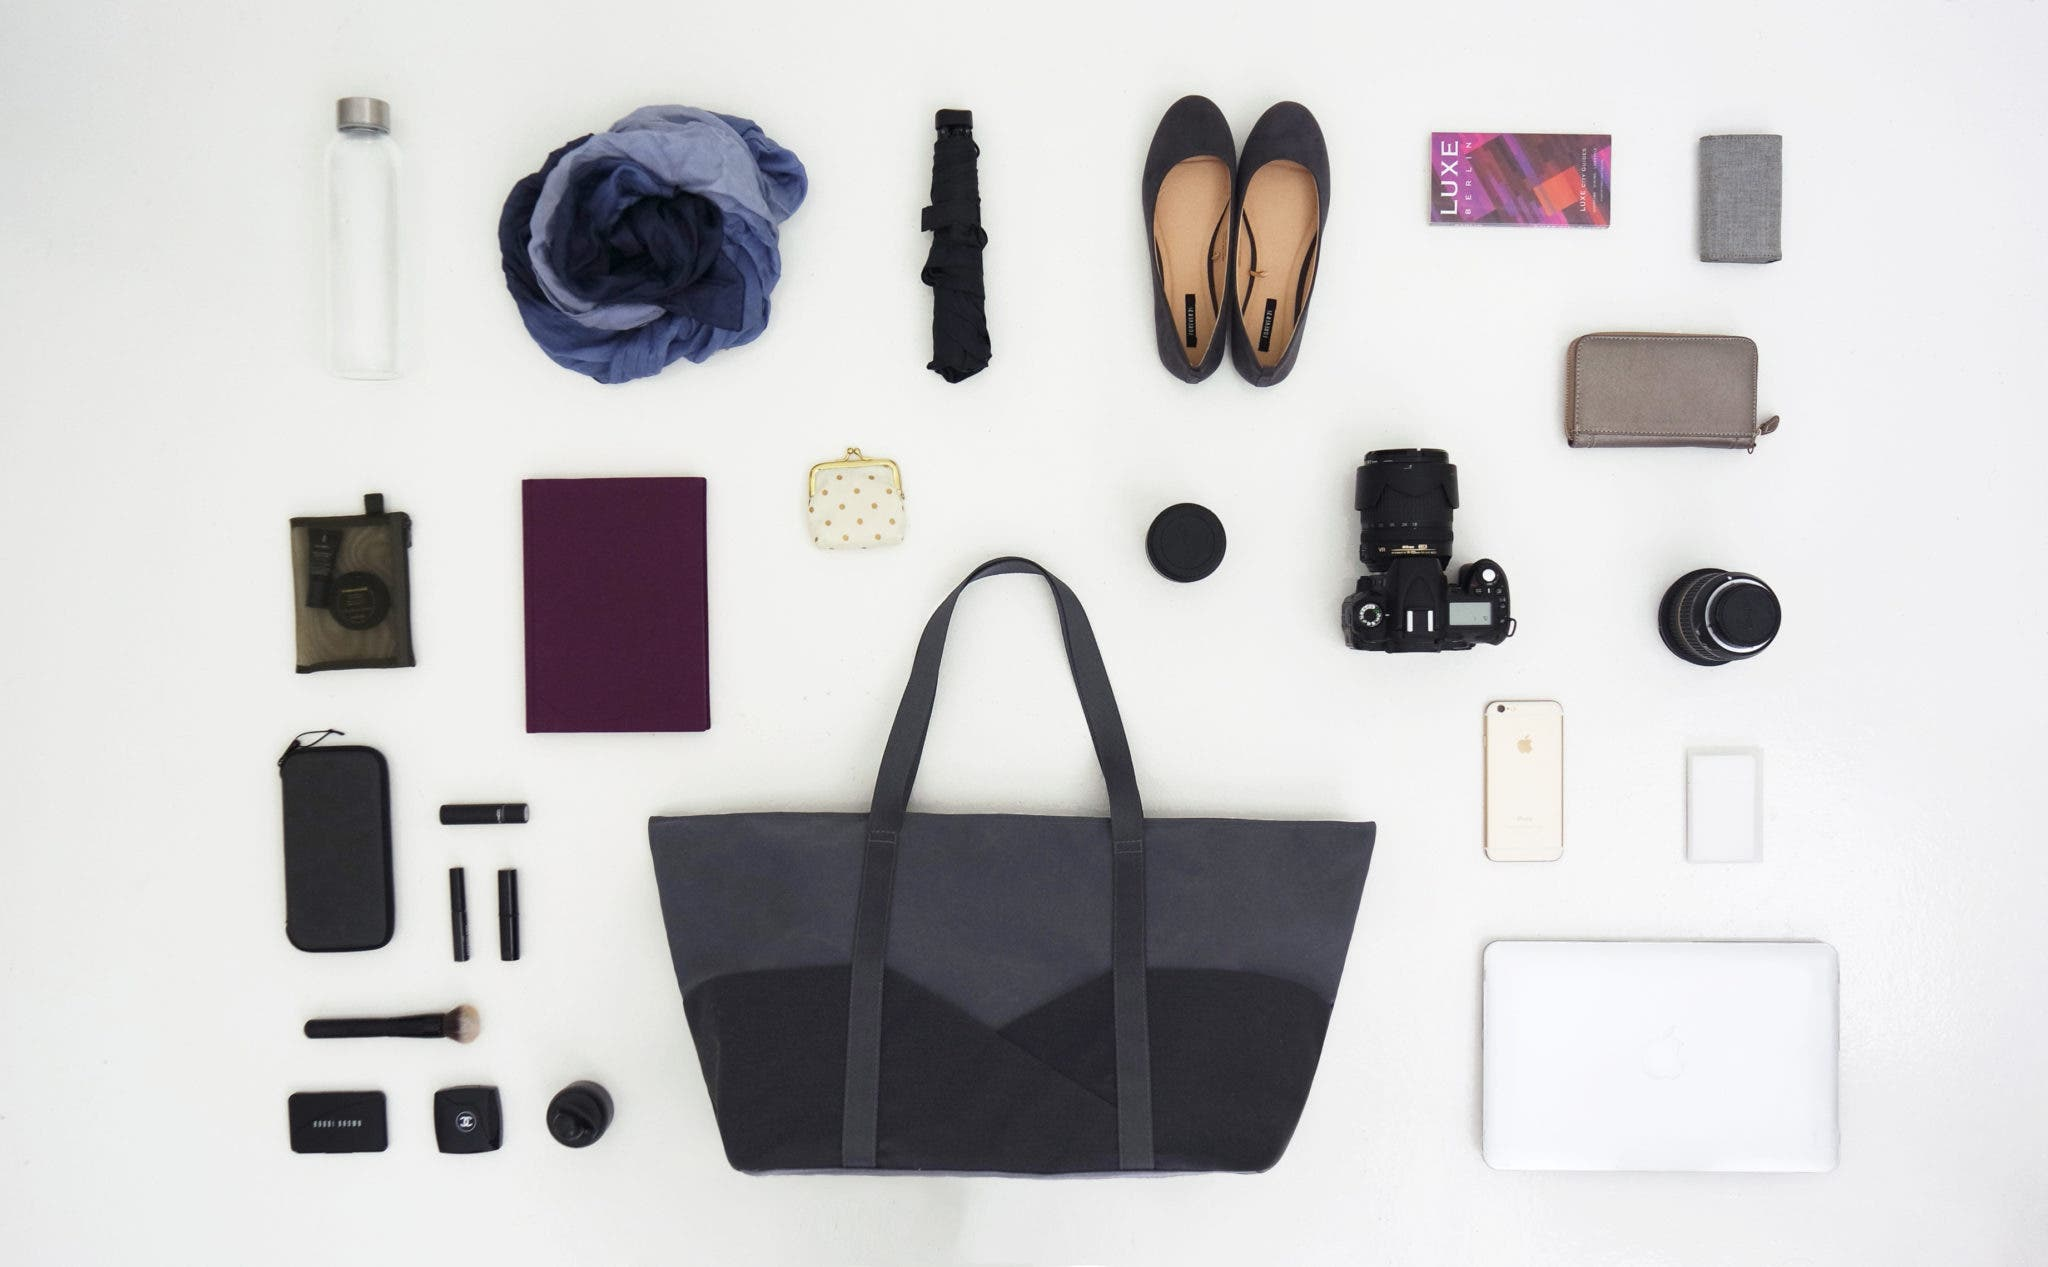 The Aide de Camp Nadine Travel Tote is an Effective Camera Bag